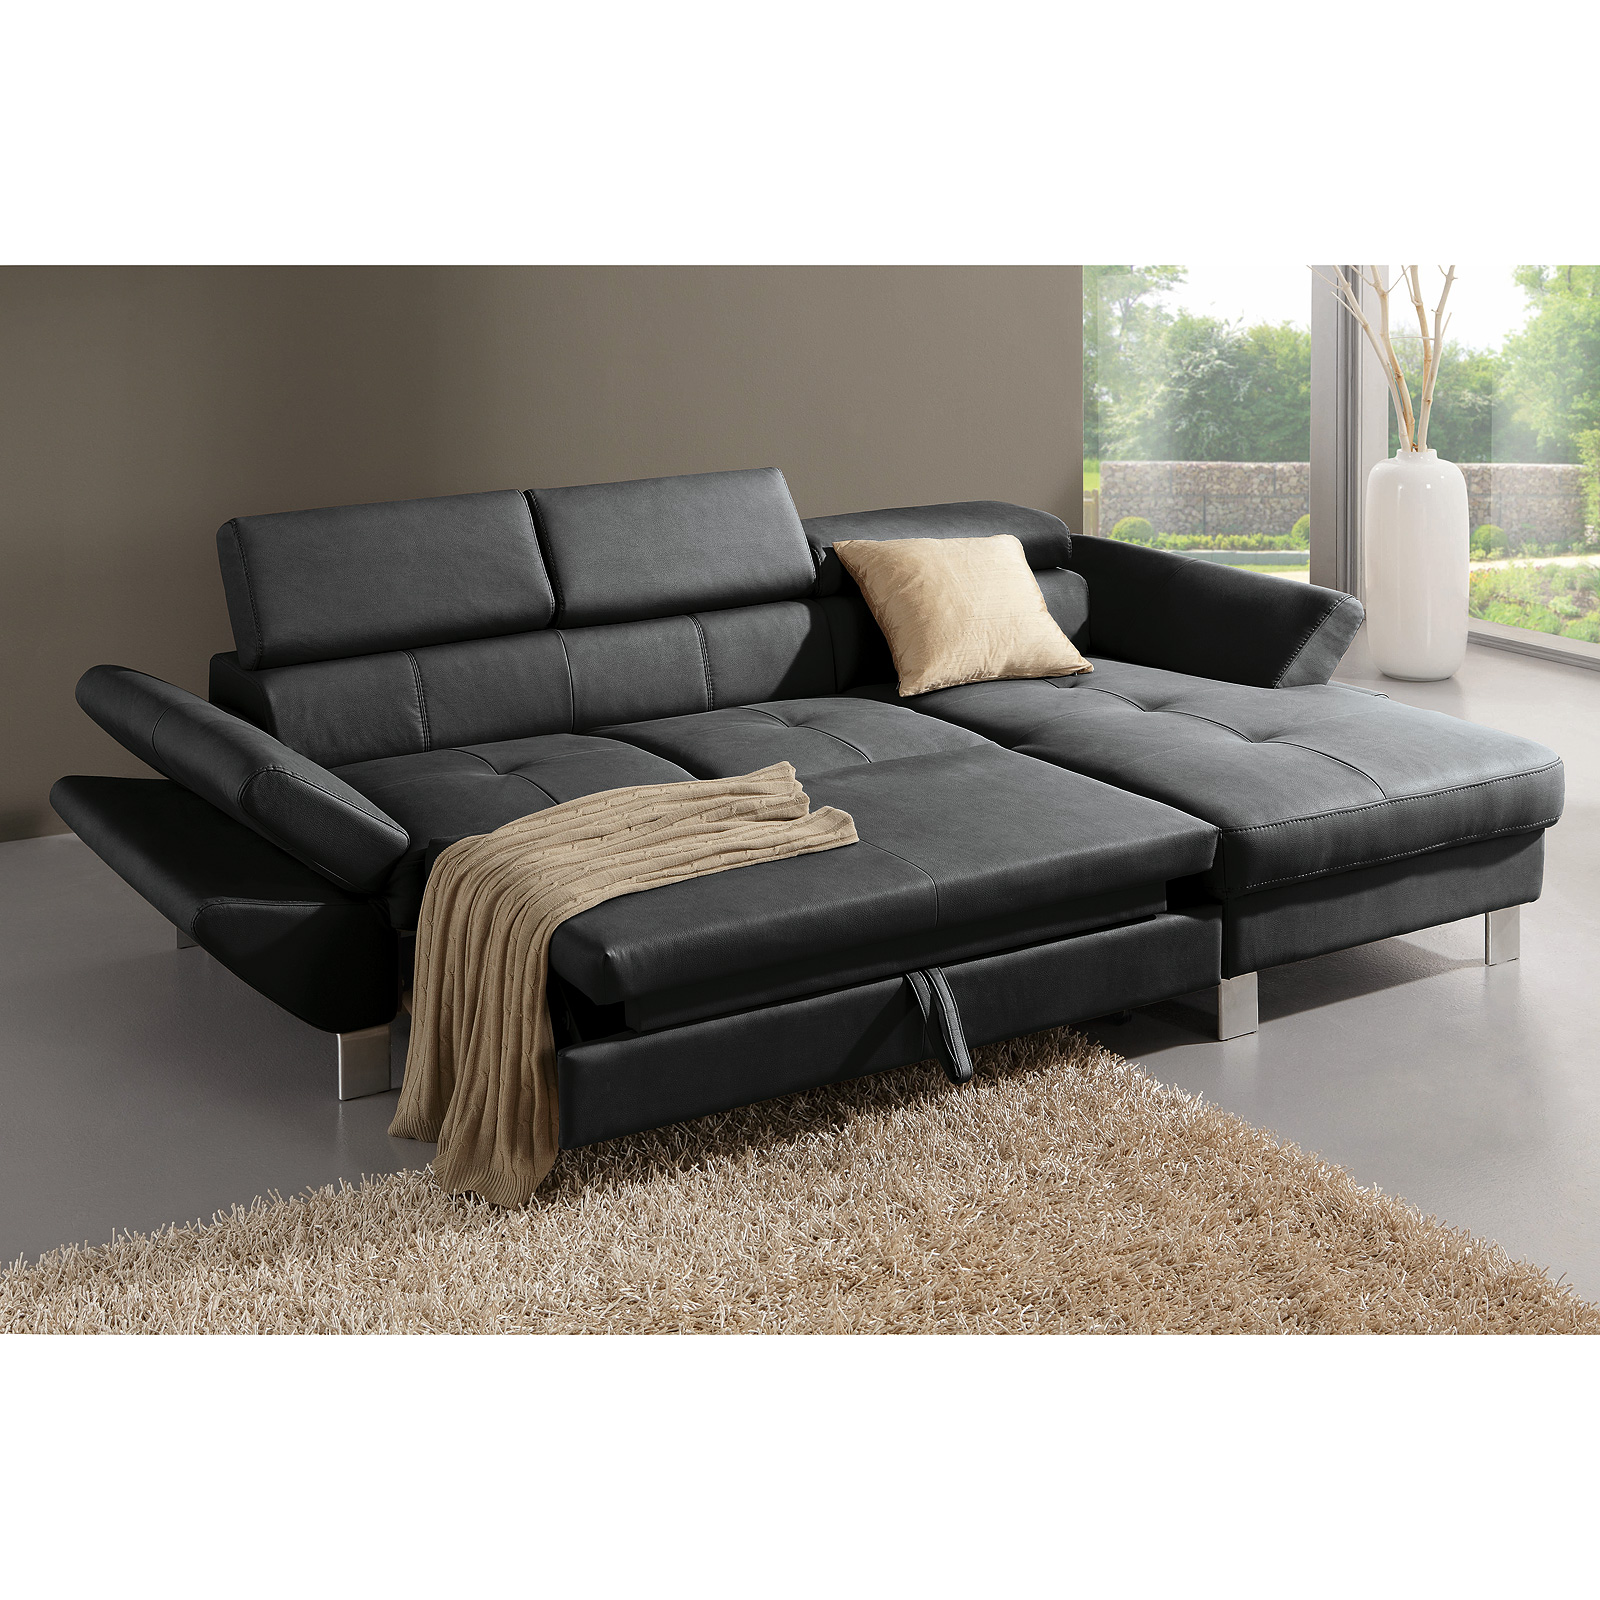 Ecksofa carrier sofa wohnlandschaft polsterecke in schwarz for Sofa mit bettfunktion